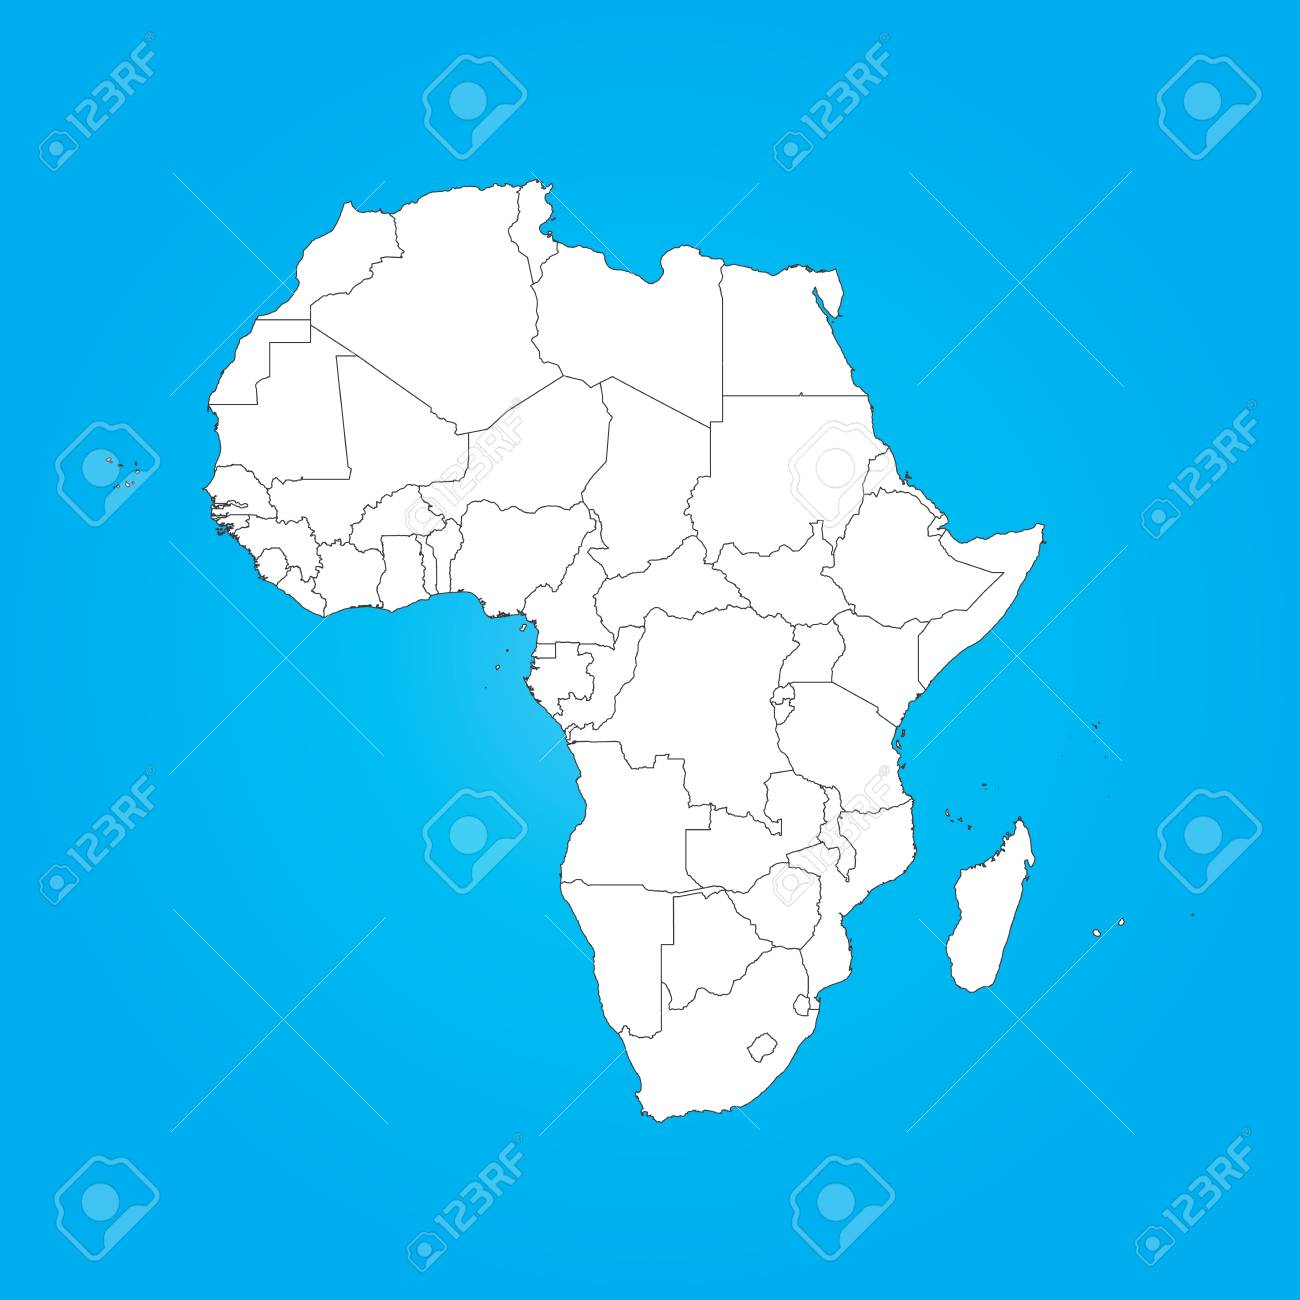 A Map Of Africa With A Selected Country Of Seychelles